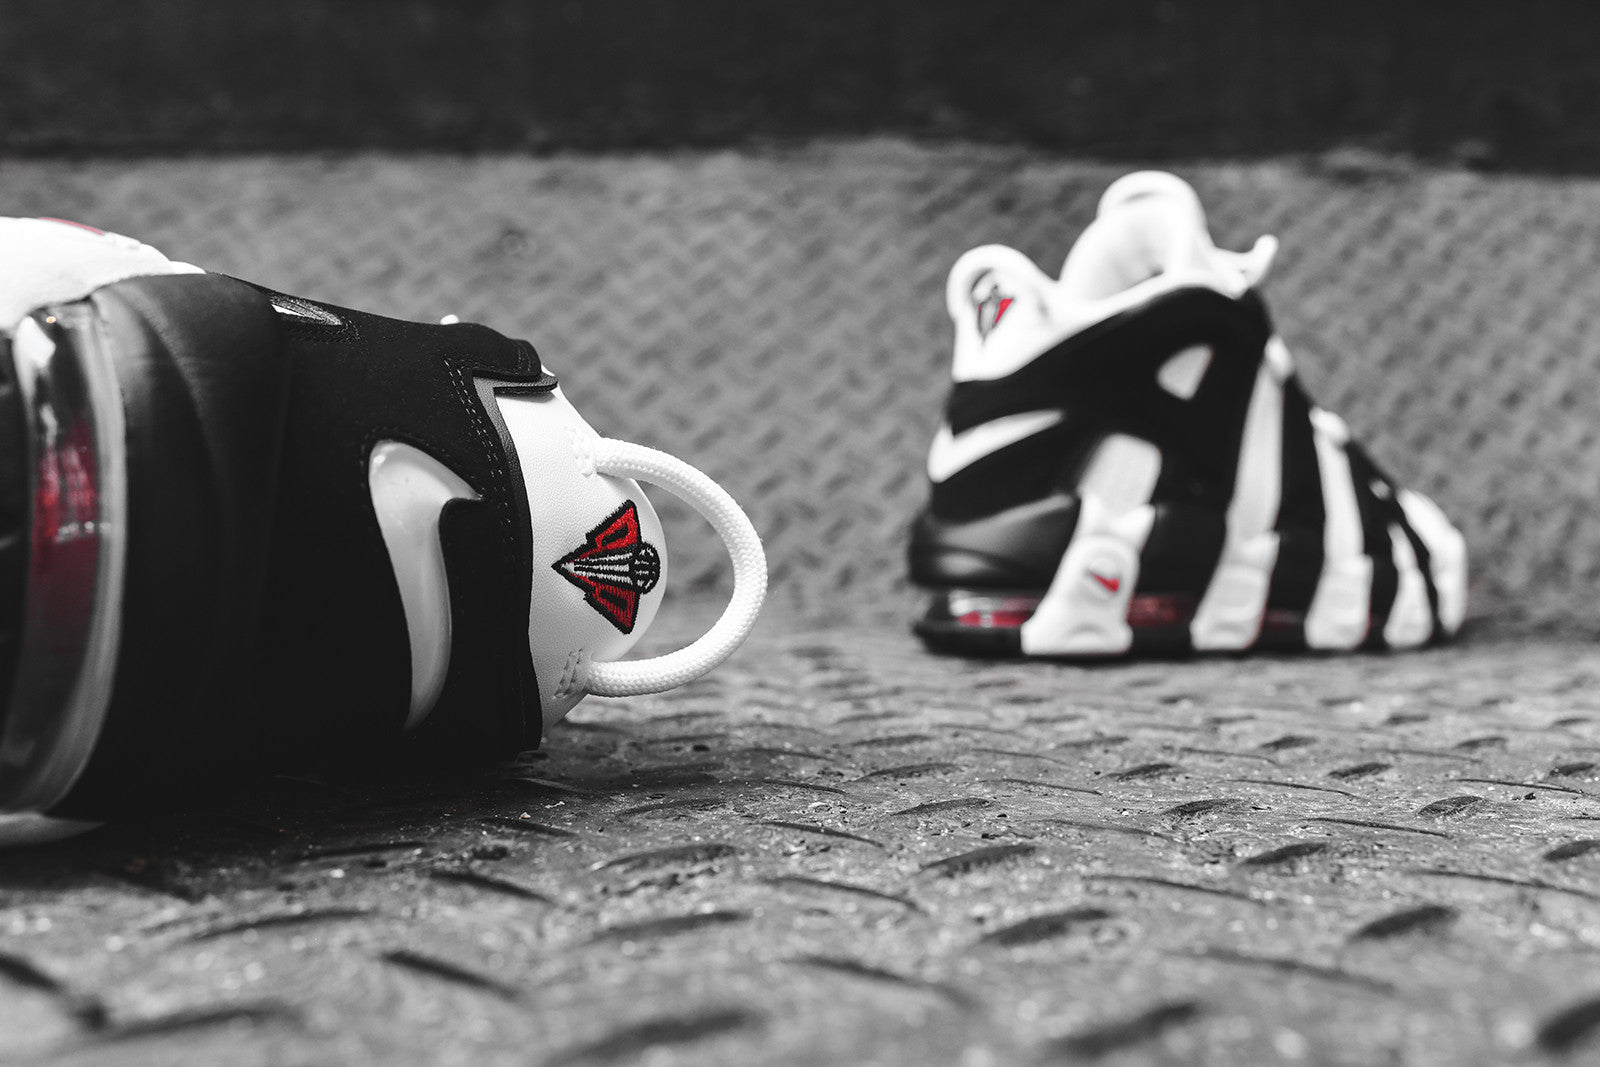 100% authentic 8f6ea 4f701 Nike Air More Uptempo - White   Black   Varsity Red. July 06, 2017. -3